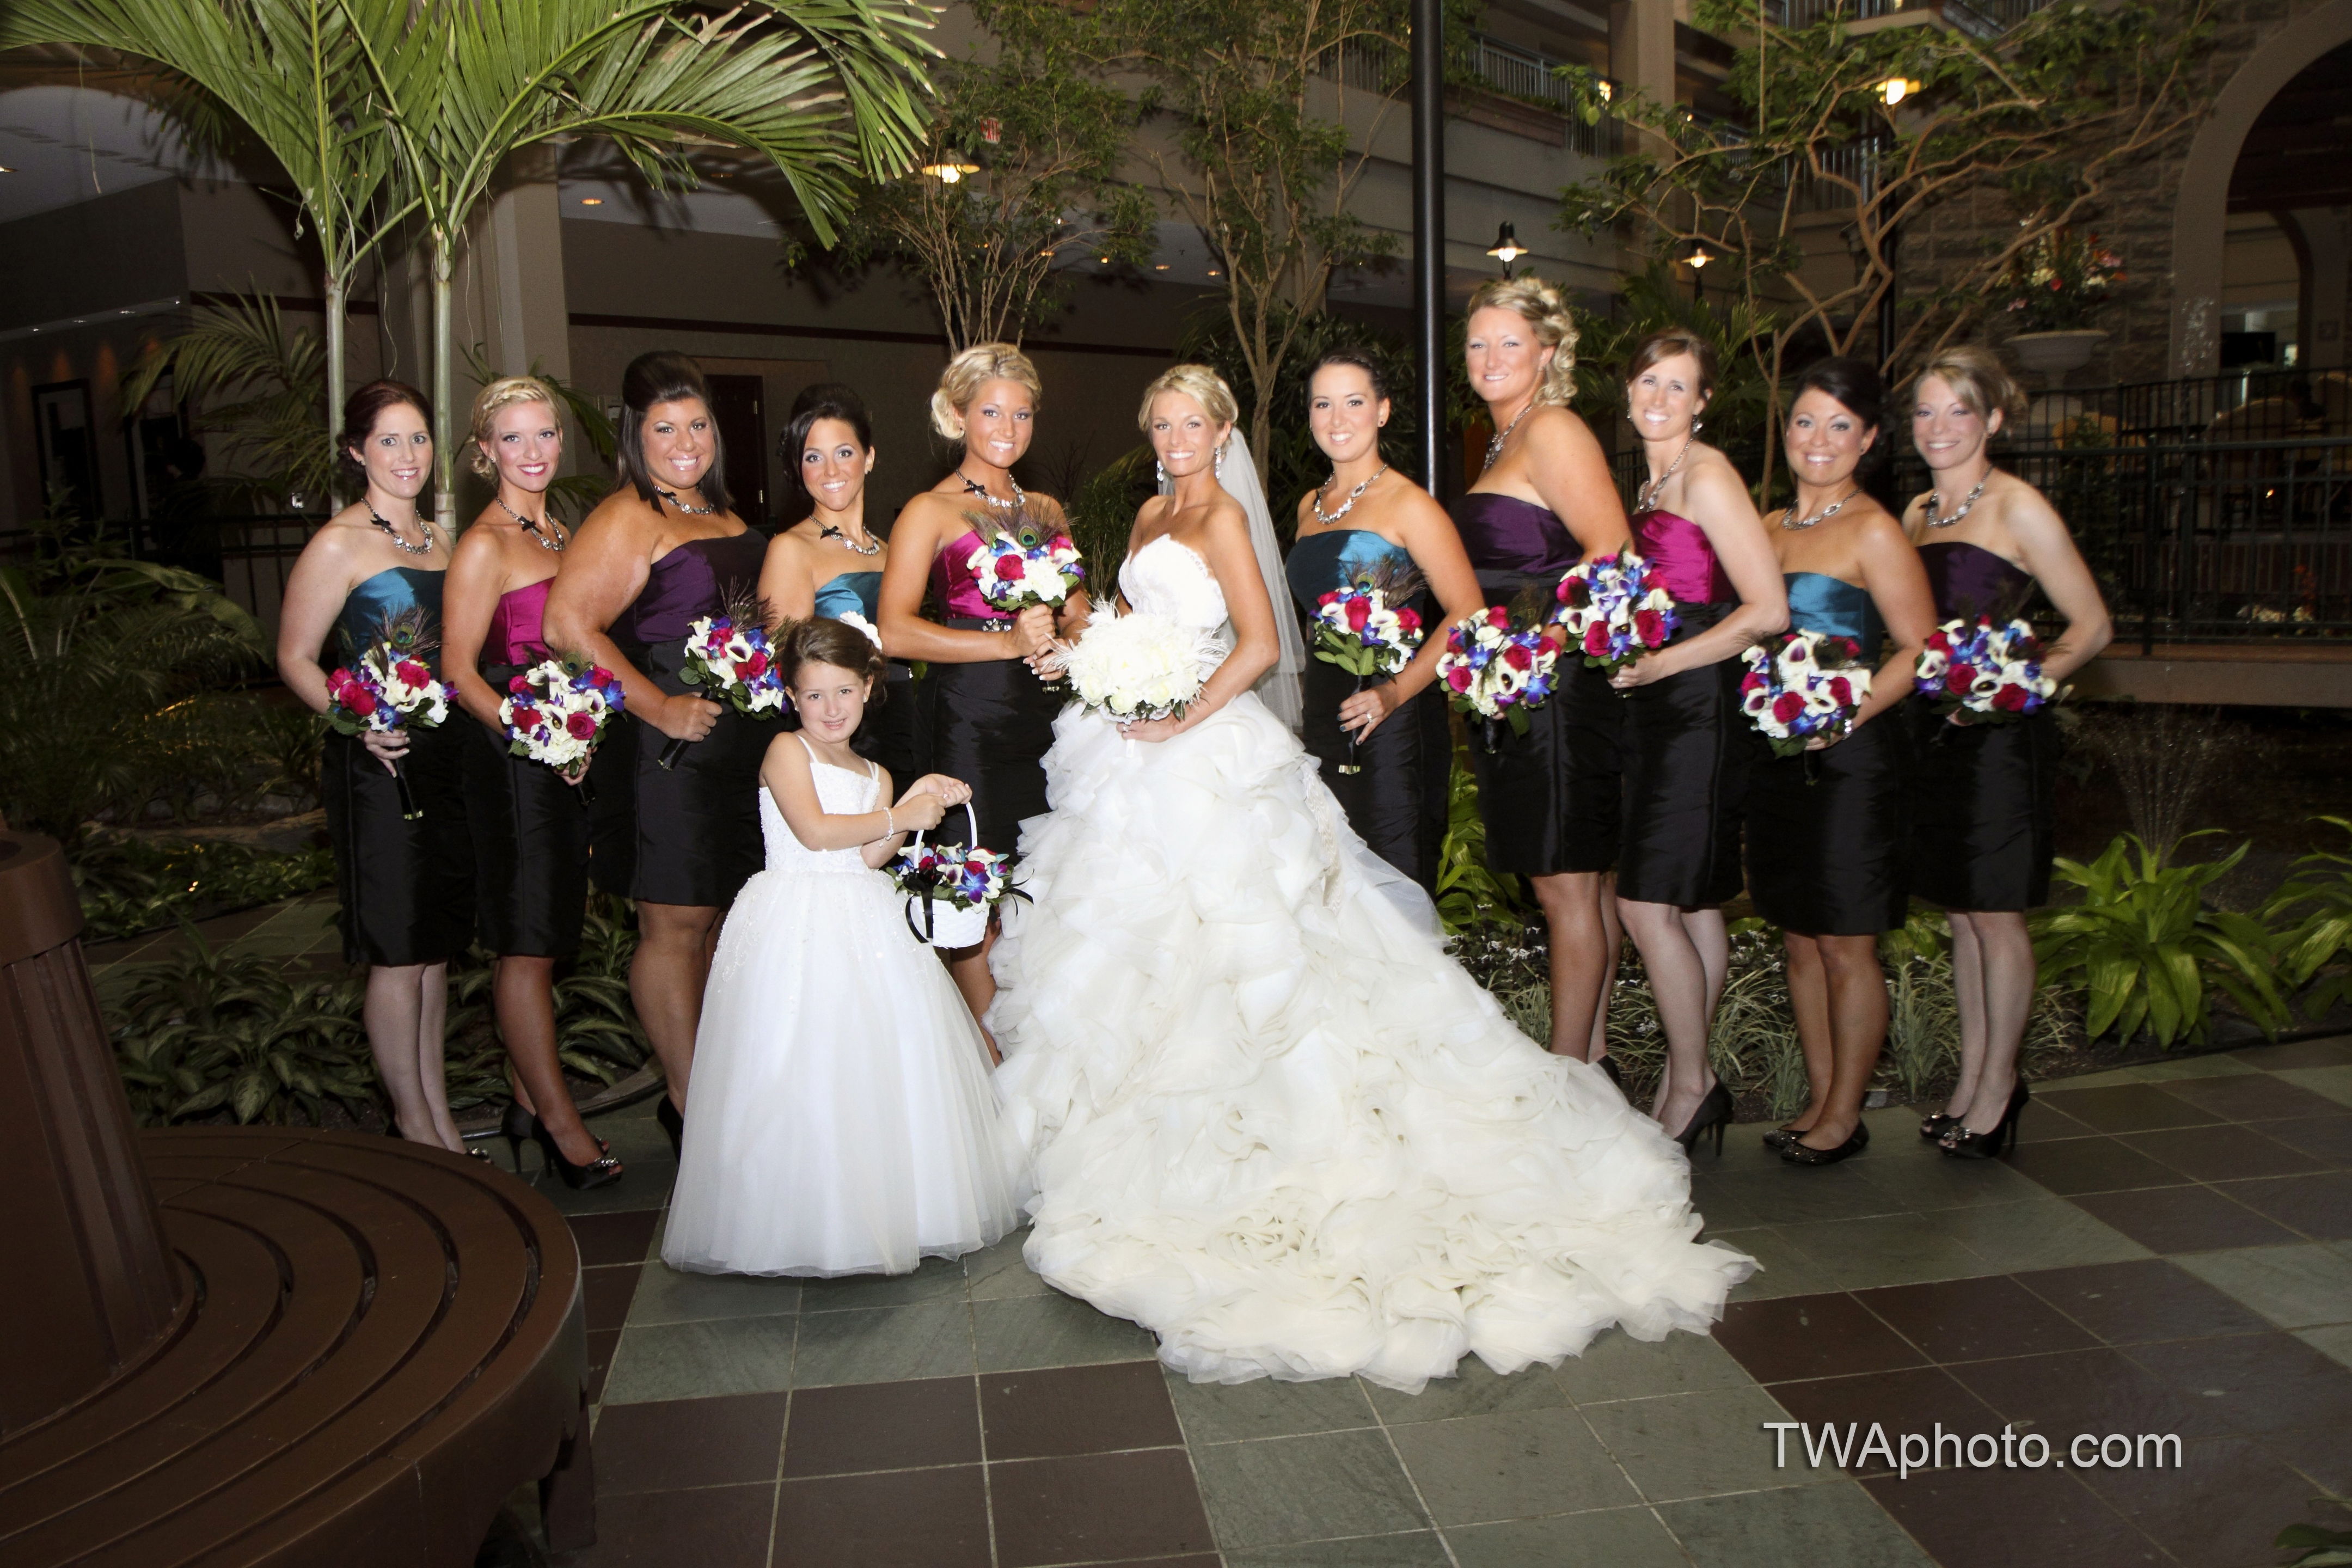 Bridal Gowns And Bridesmaids Dresses « JLM Weddings